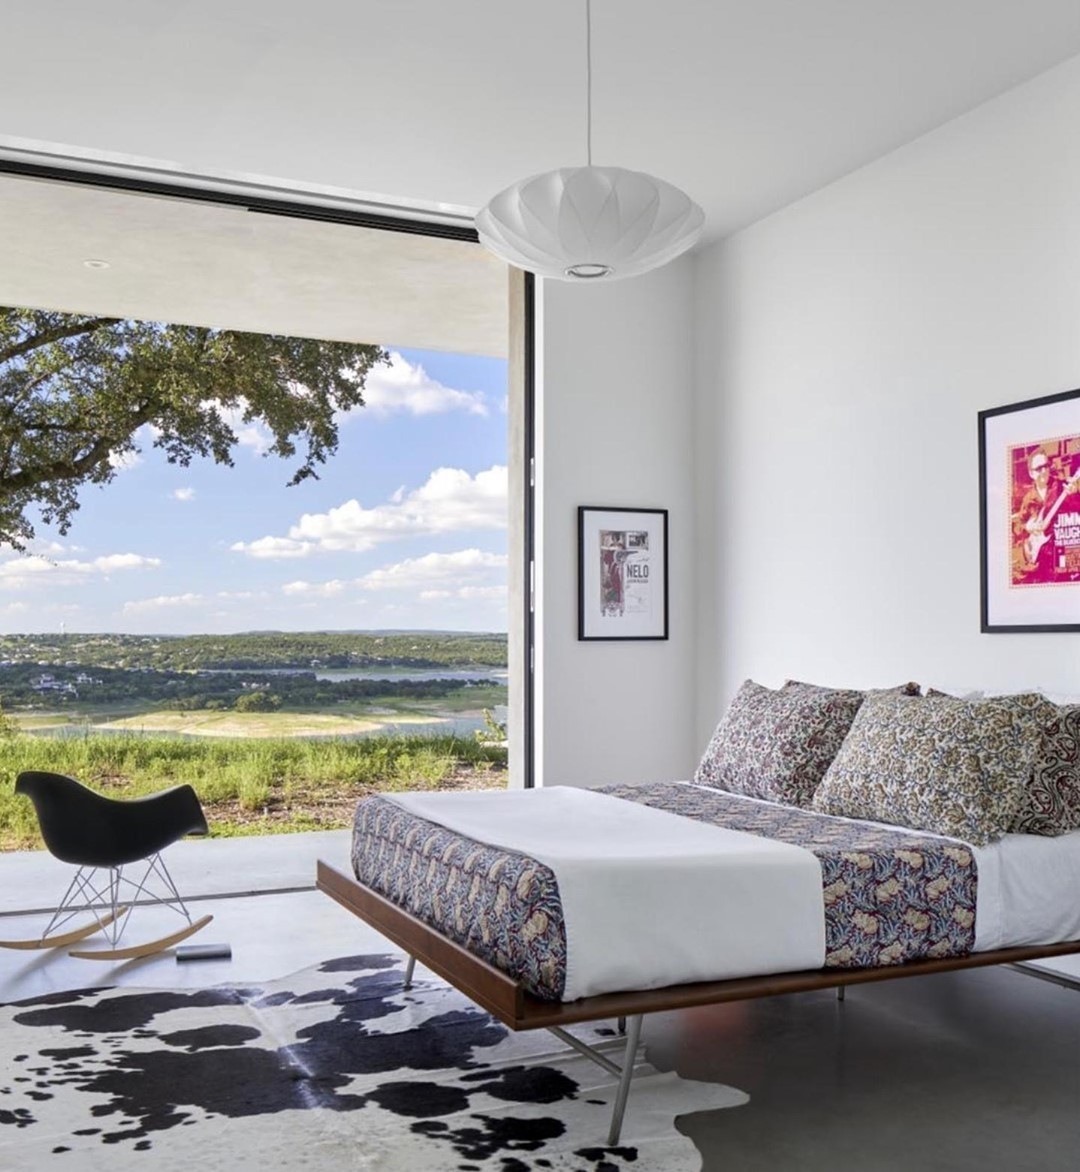 Rocking mid-century style overlooking the Texas Hill Country.  Built by @foursquarebuilders  Photo by @drorbaldingerphotographer  Designed by @dc_architecture